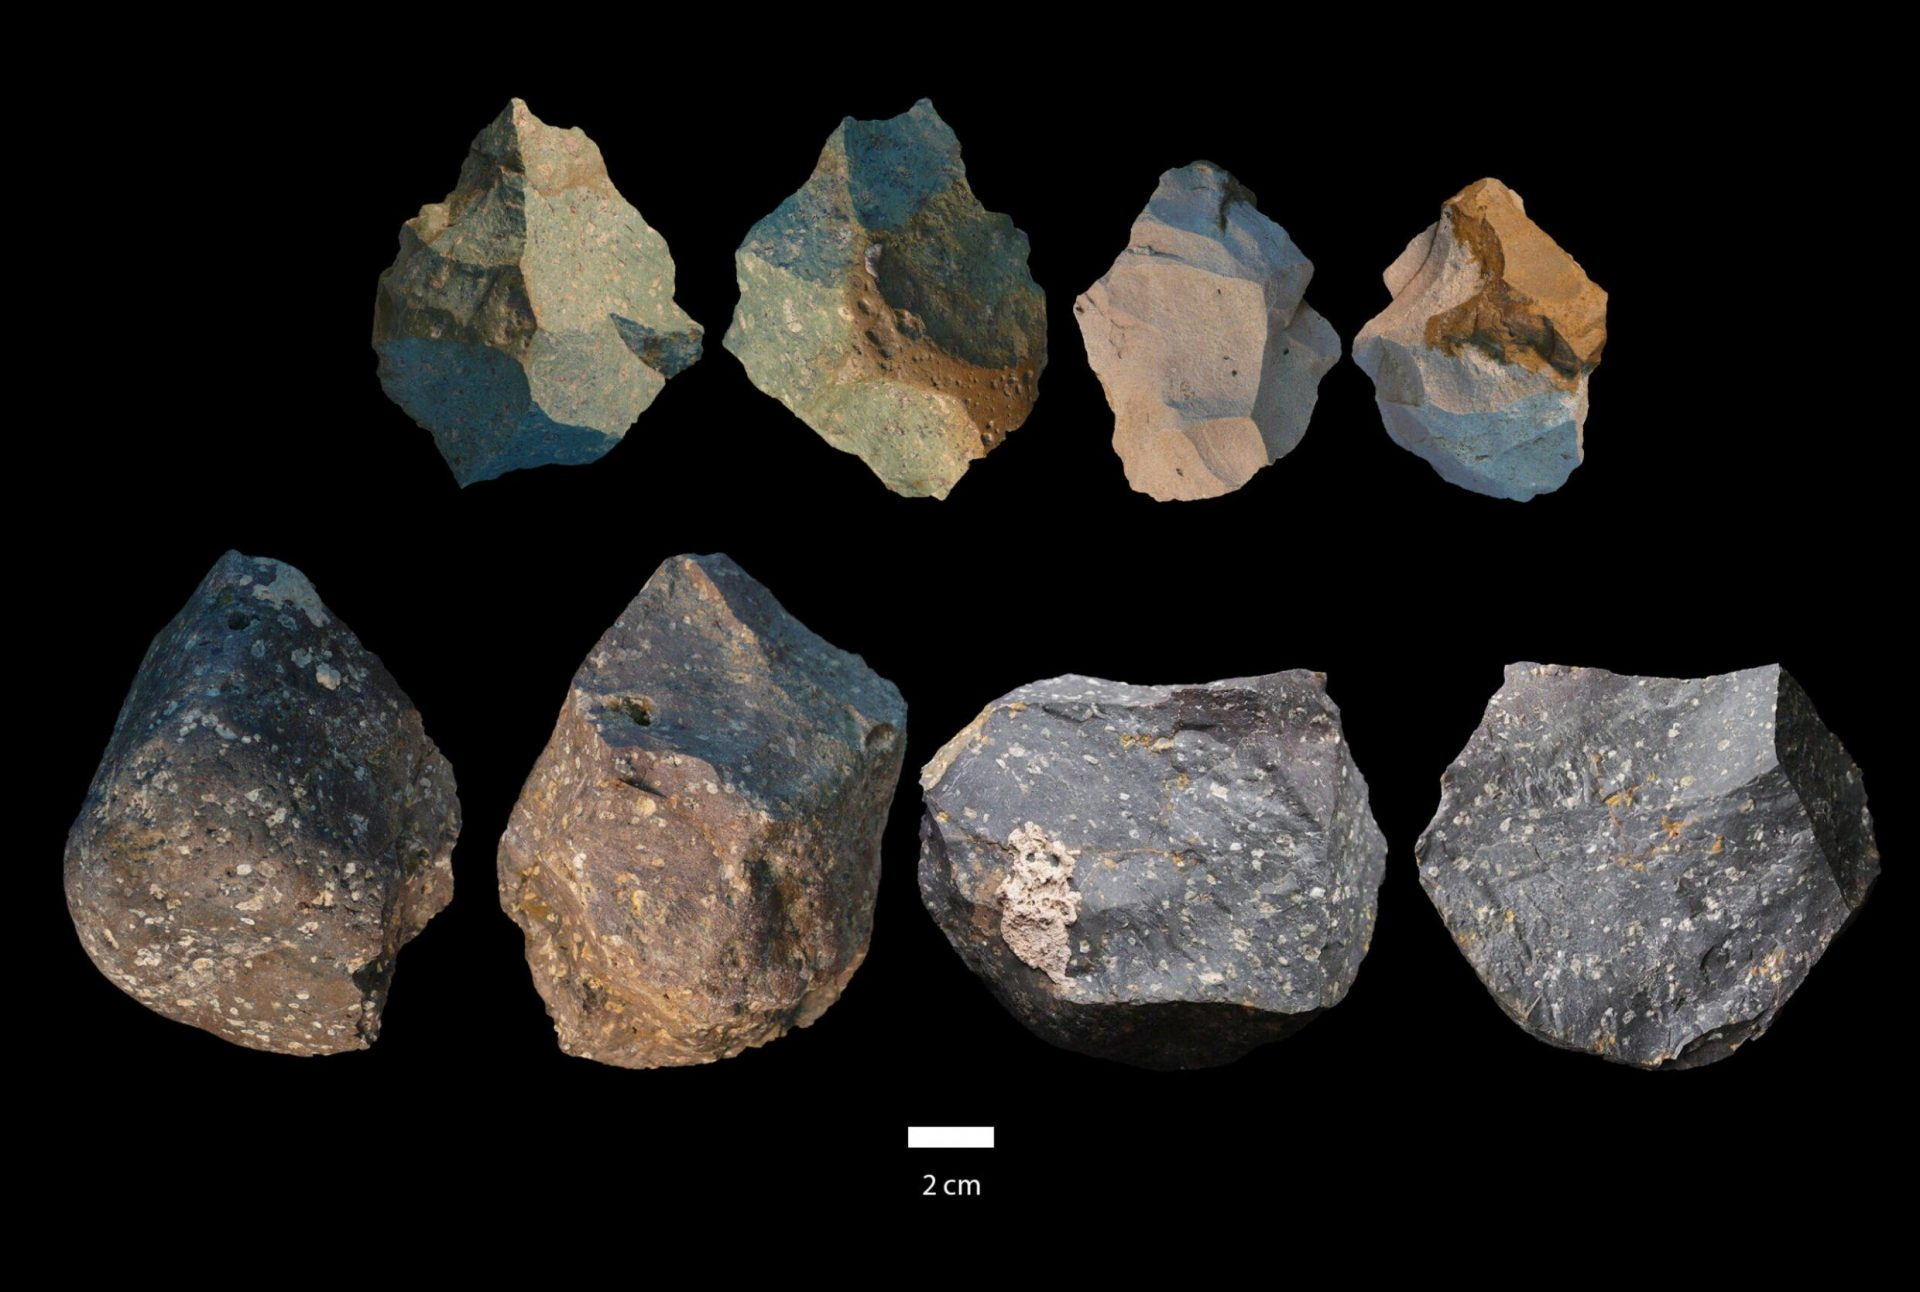 The evidence from Gona suggests a lengthy and concurrent use of both Oldowan and Acheulian technologies by a single long-lived species, H. erectus, the variable expression of which deserves continued research, according to the researchers. (Image: University of Michigan)